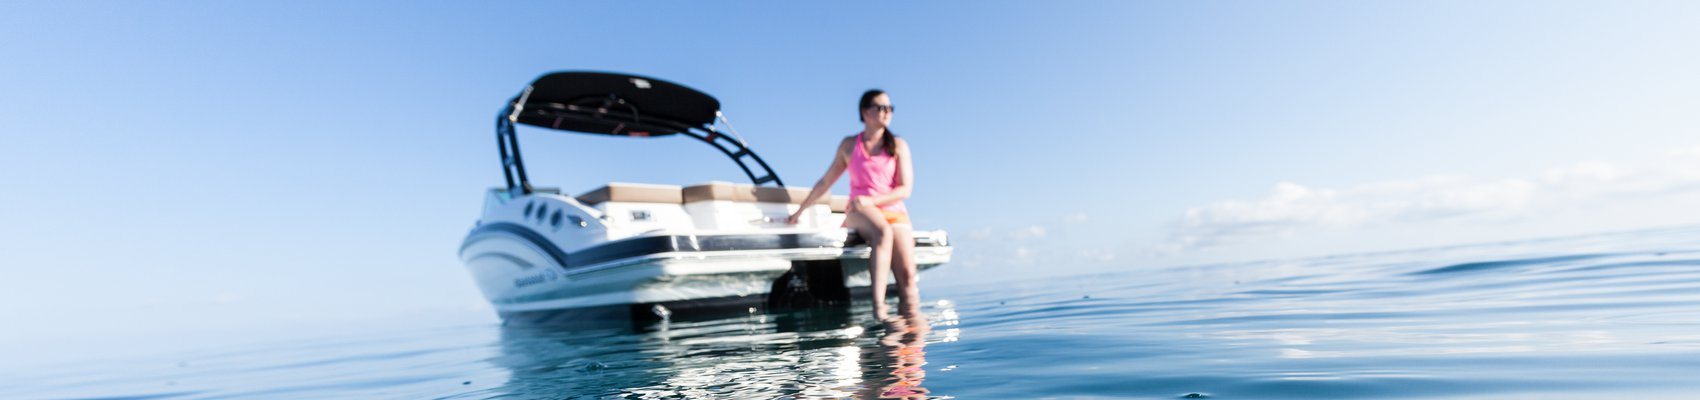 Sterndrives & Inboards | Mercury Marine